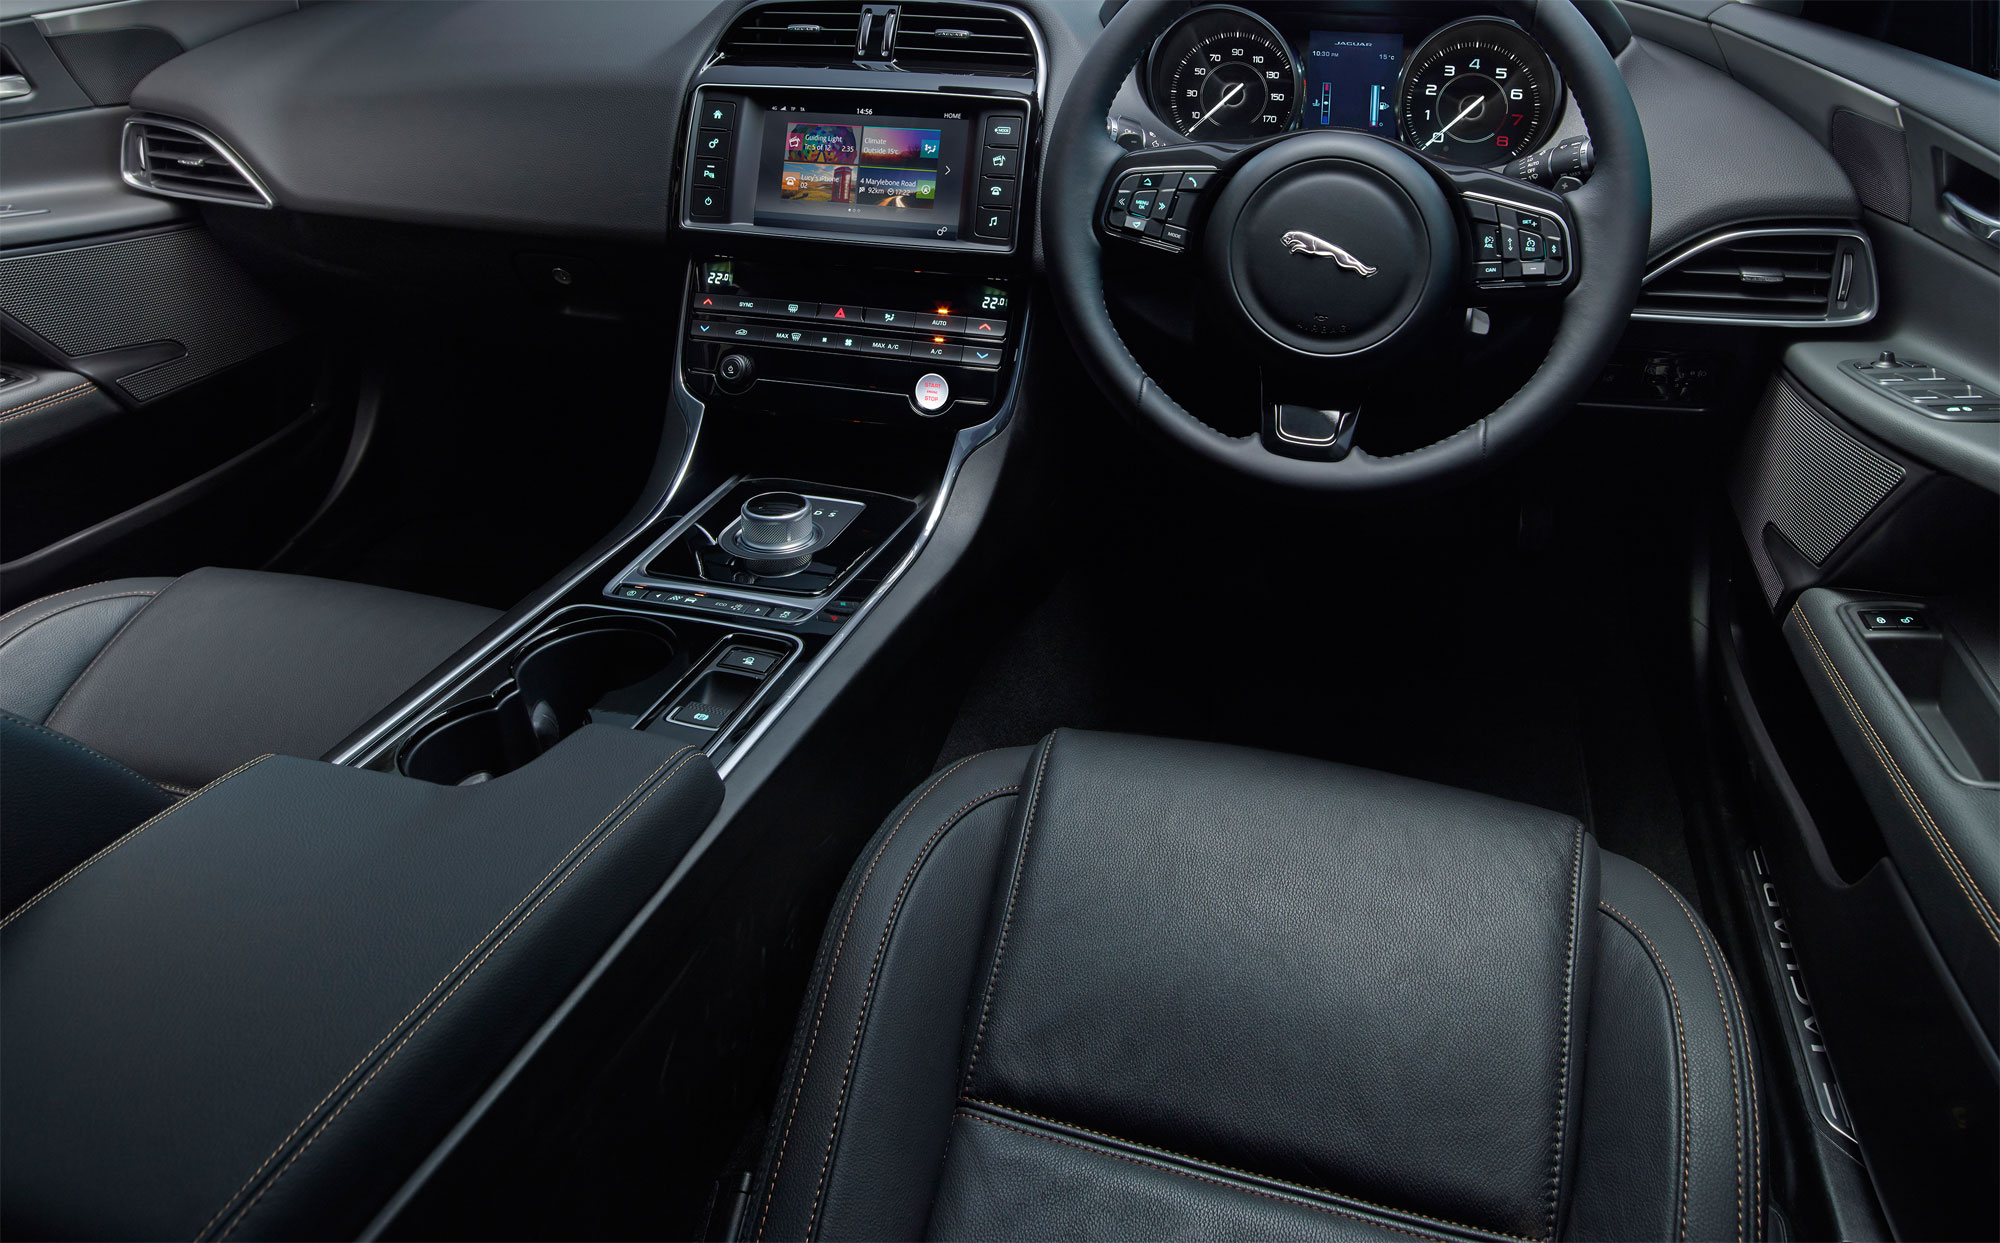 The spacious and full-leather interior has been nicely styled